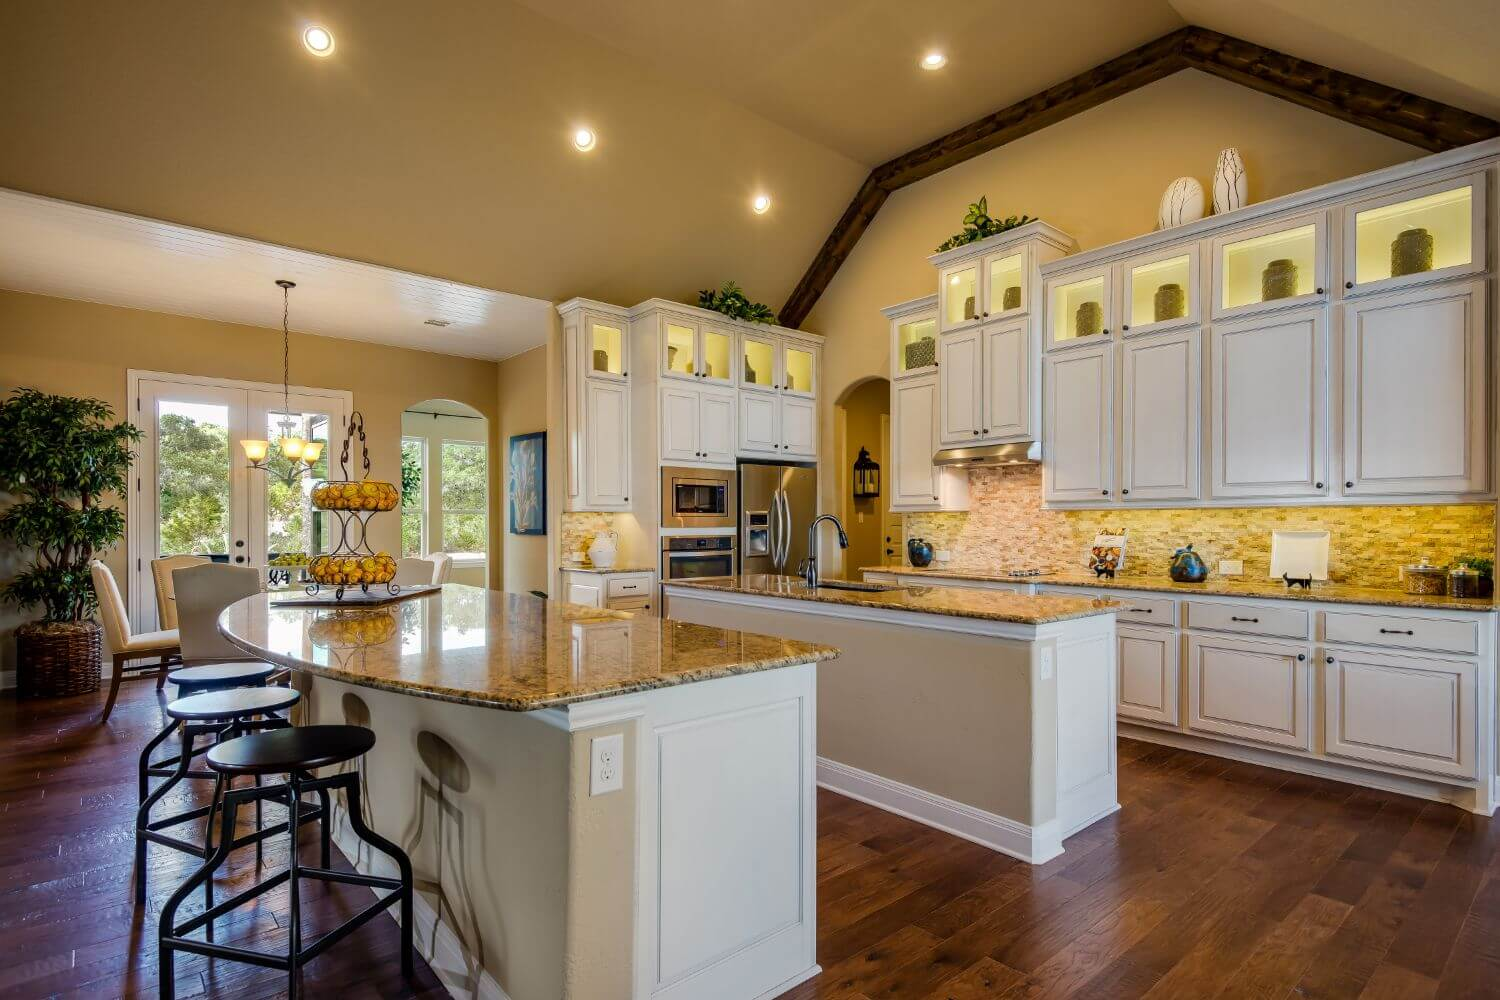 Kitchen - Design 3256